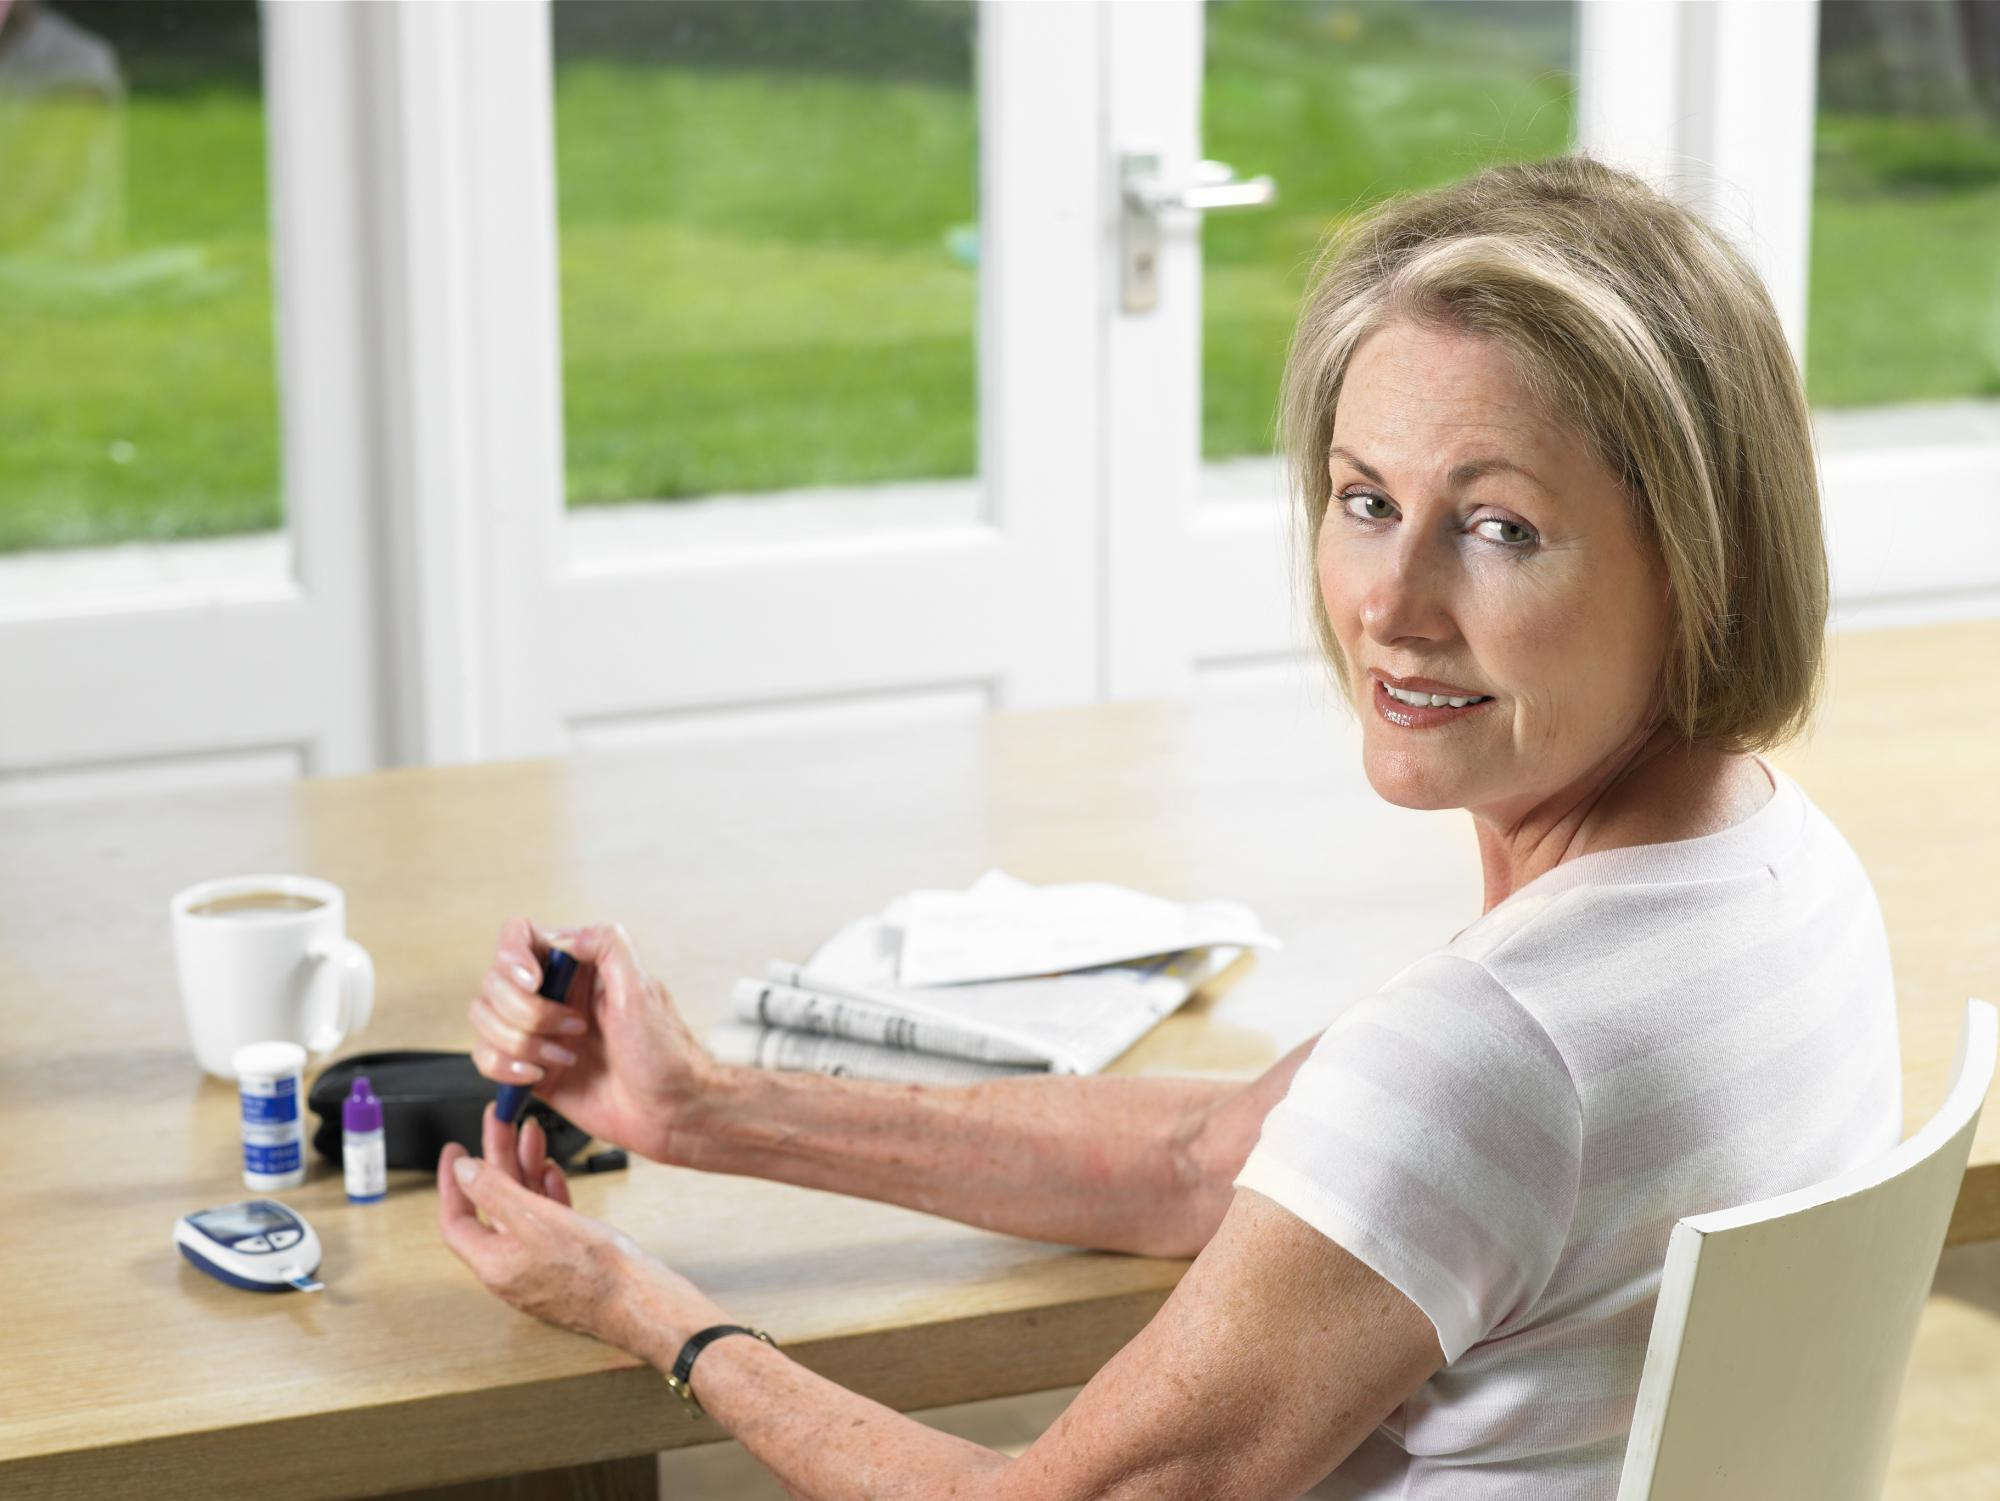 Diabetes in Middle Age Can Precipitate Faster Mental Decline